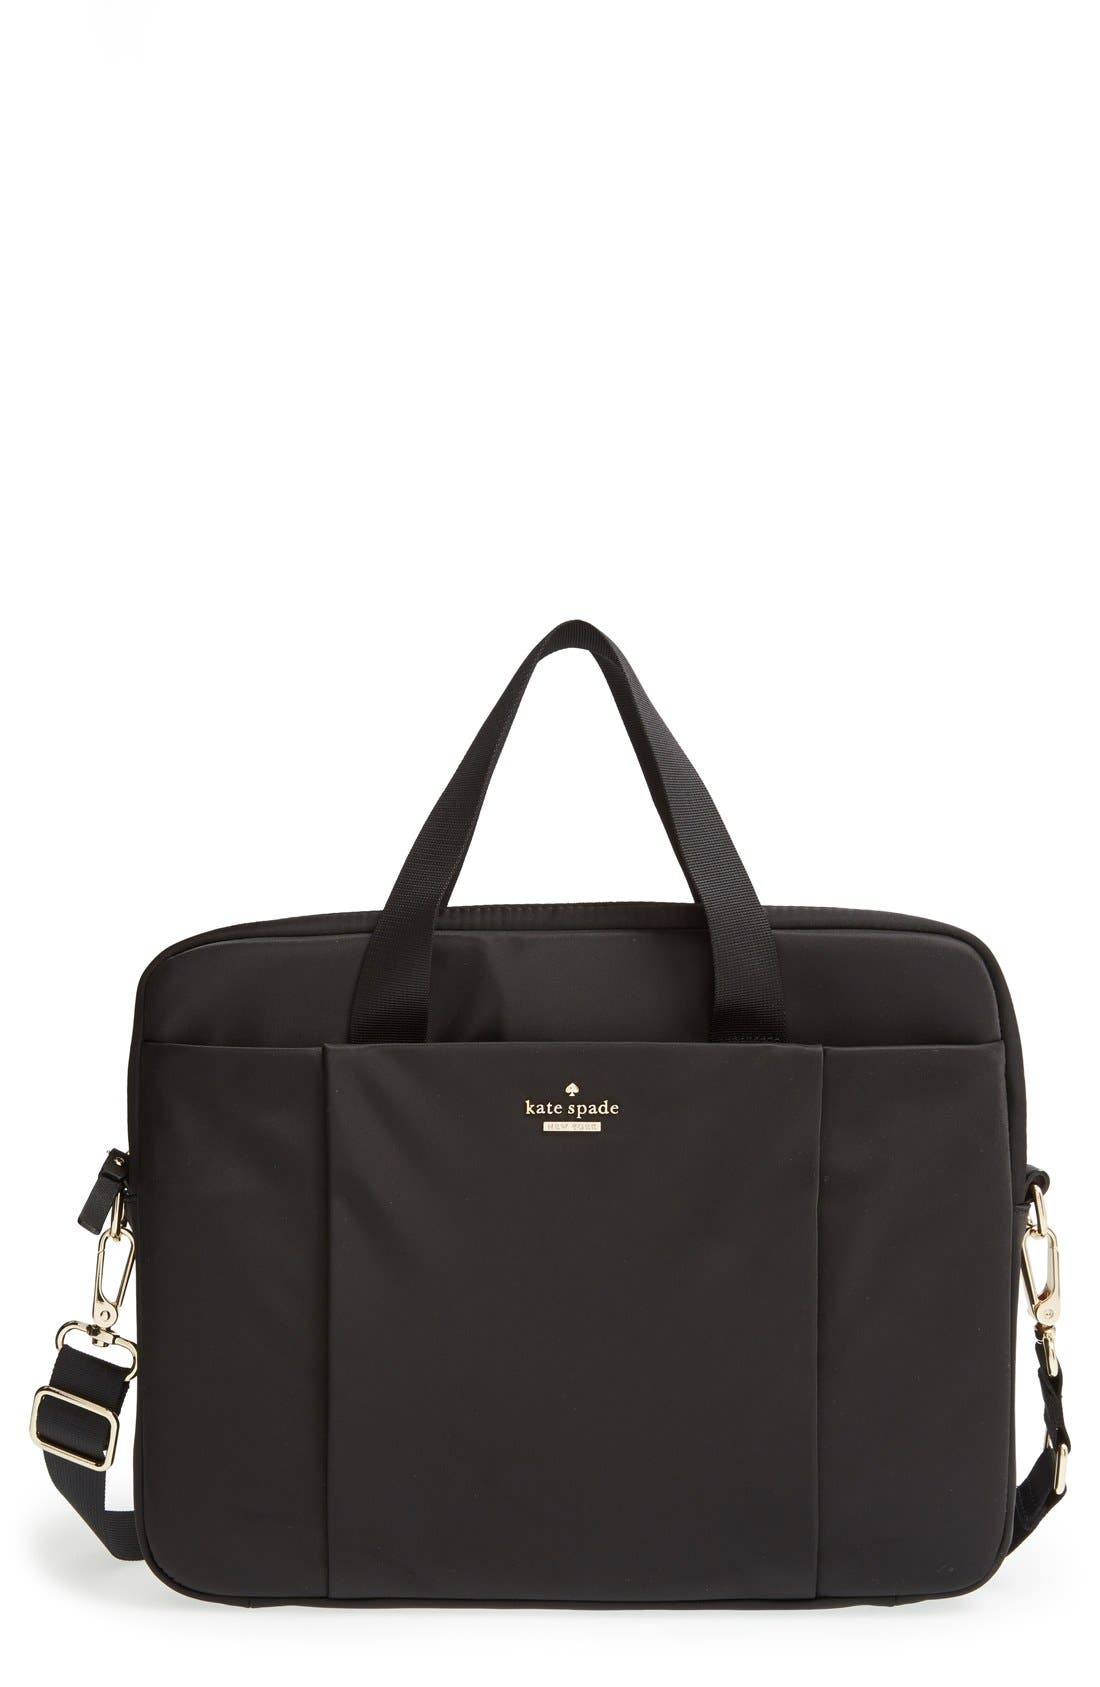 KATE SPADE NEW YORK 'classic' laptop case, Main, color, 001